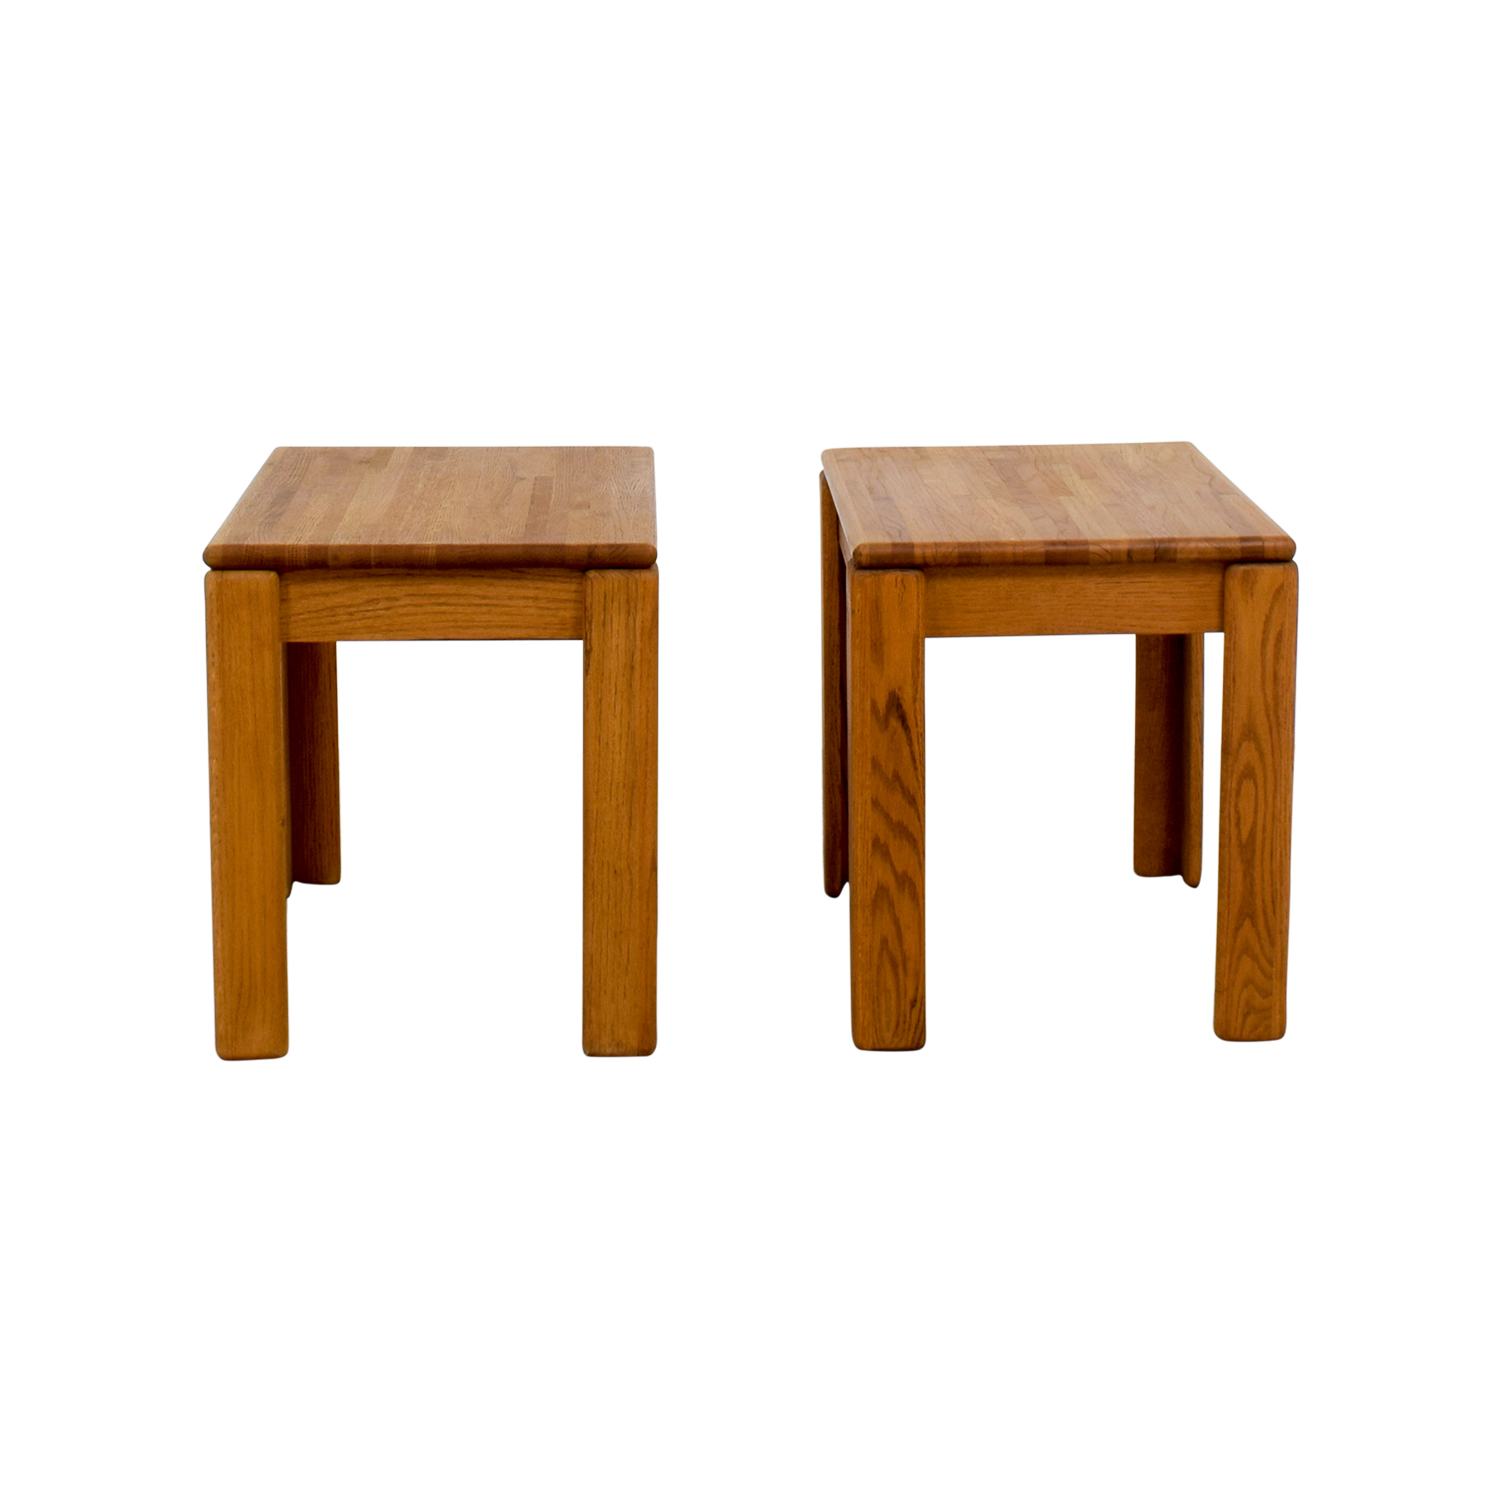 Butcher Block End Tables price